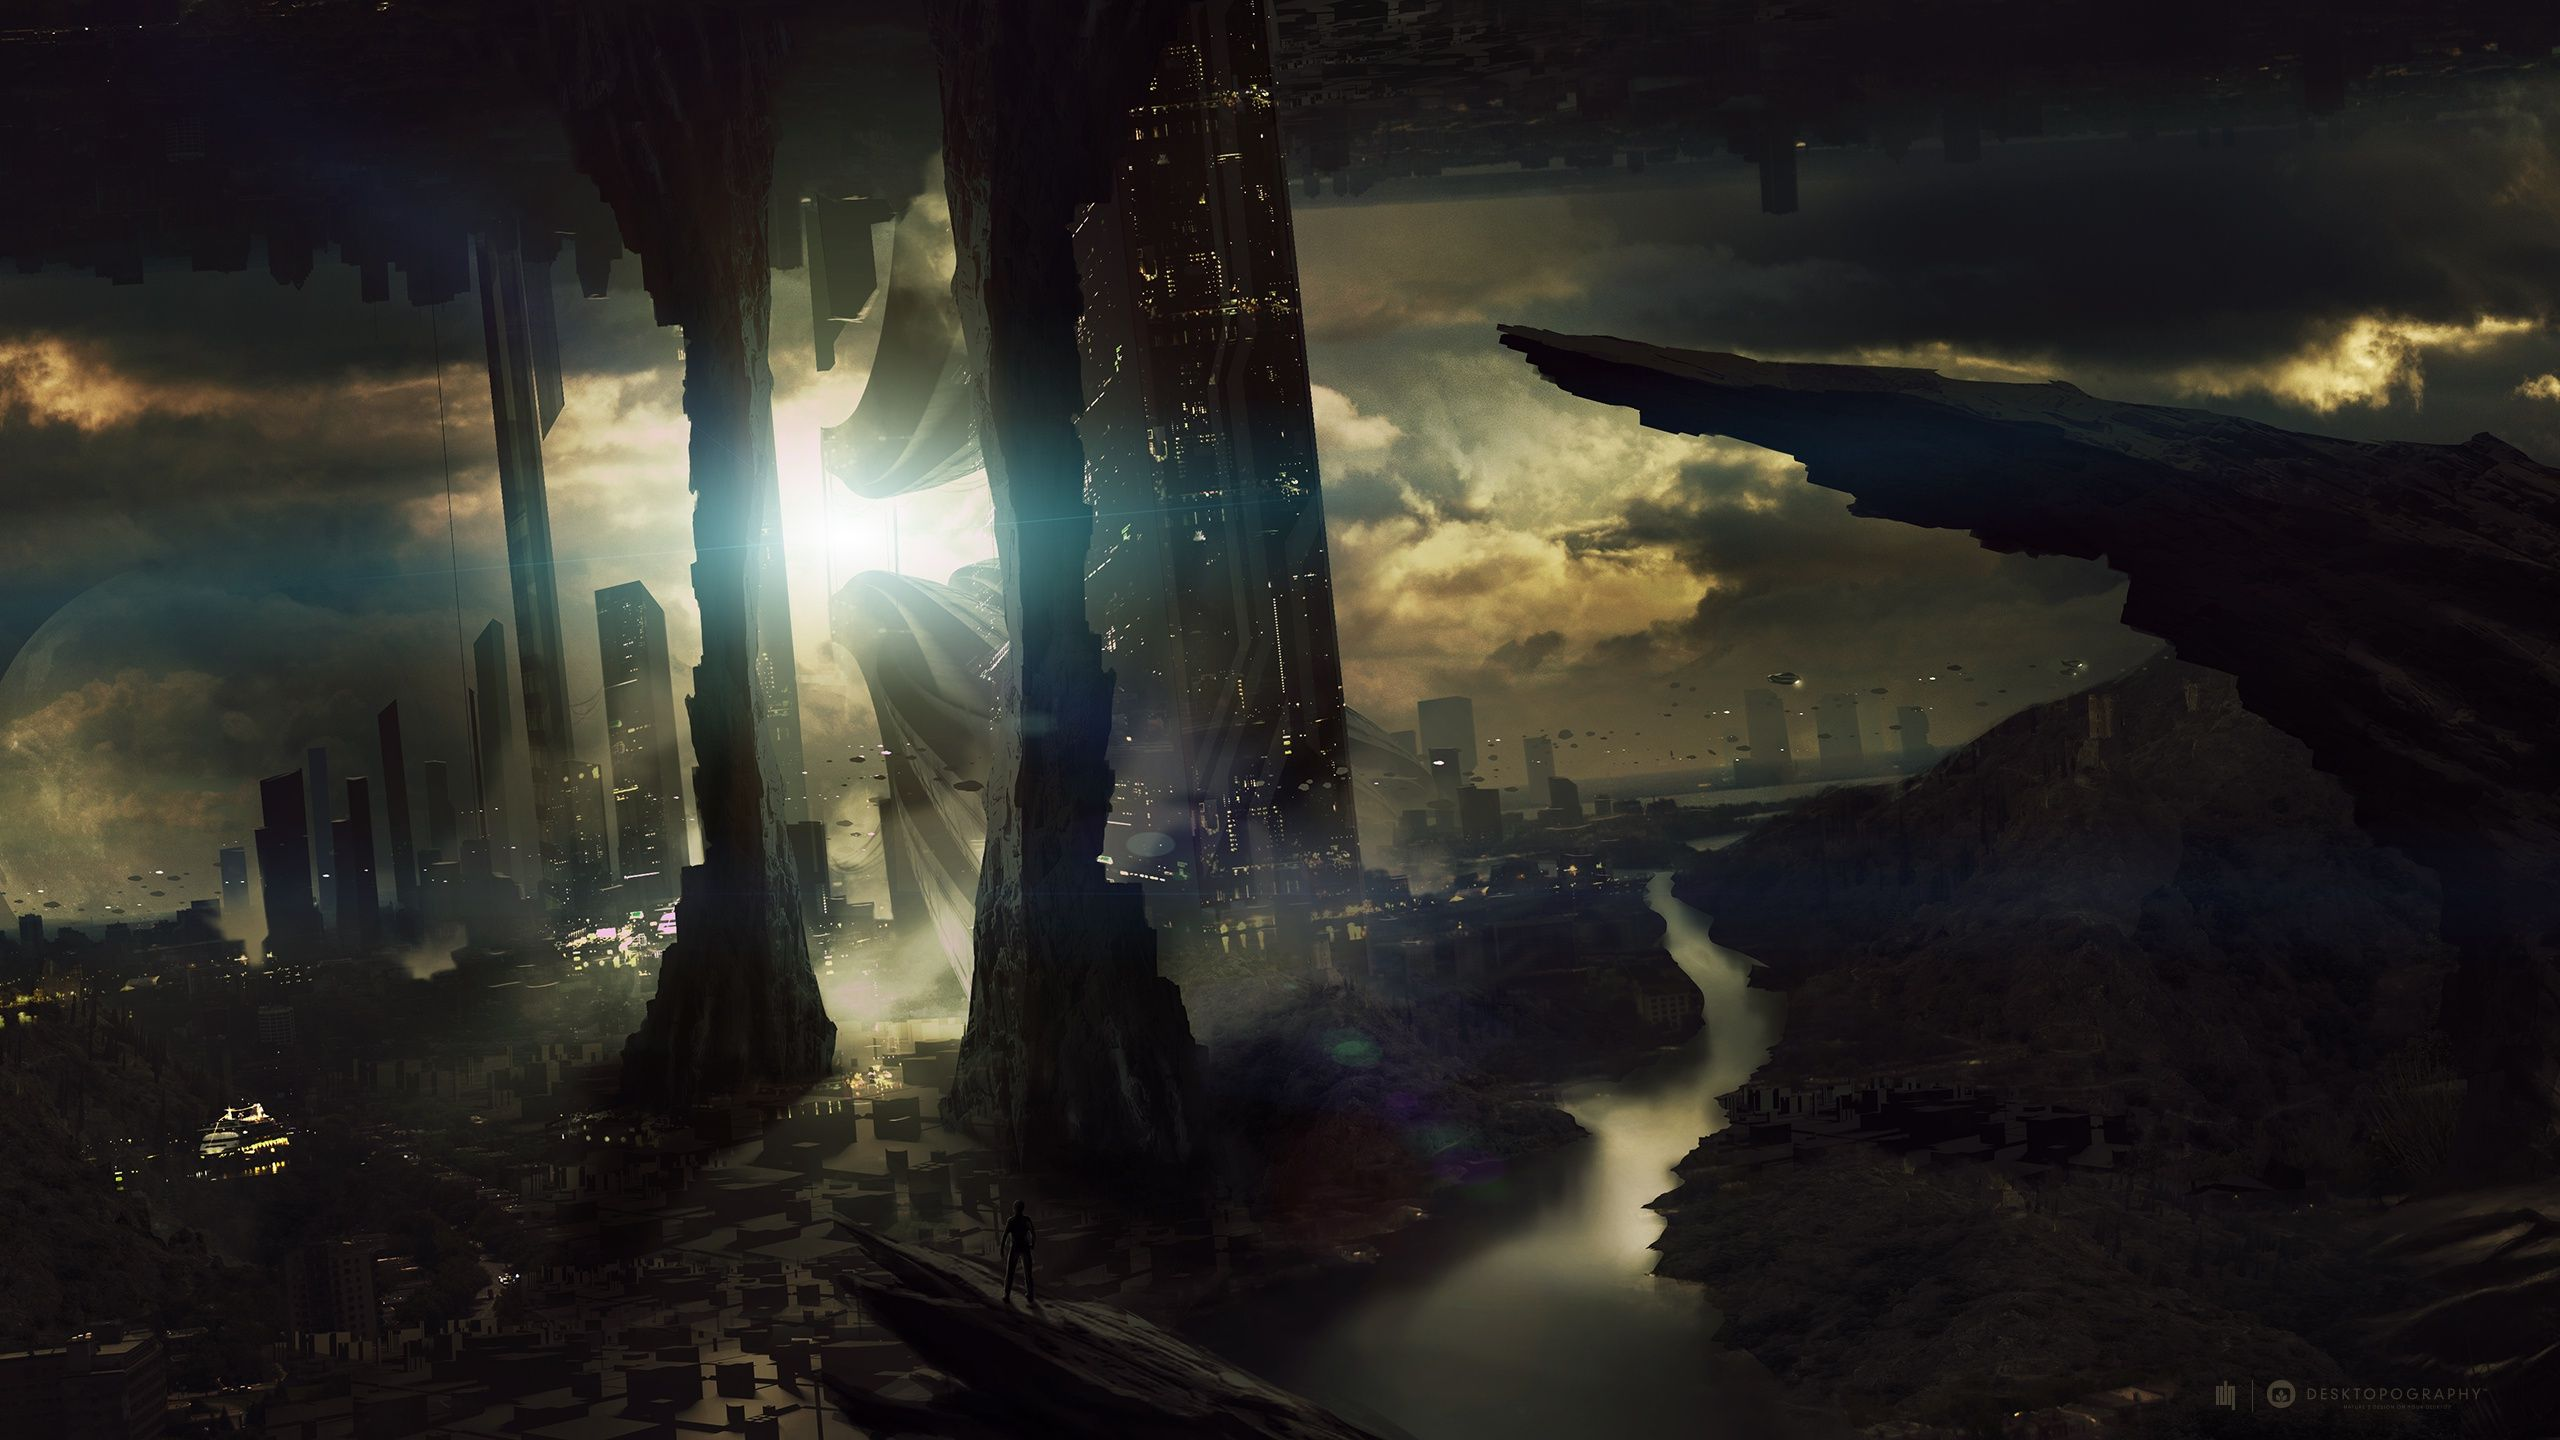 Sci Fi Wallpapers 5 Awesome Wallpapers Wallpaper Landscape Wallpaper Sci Fi Wallpaper Futuristic City